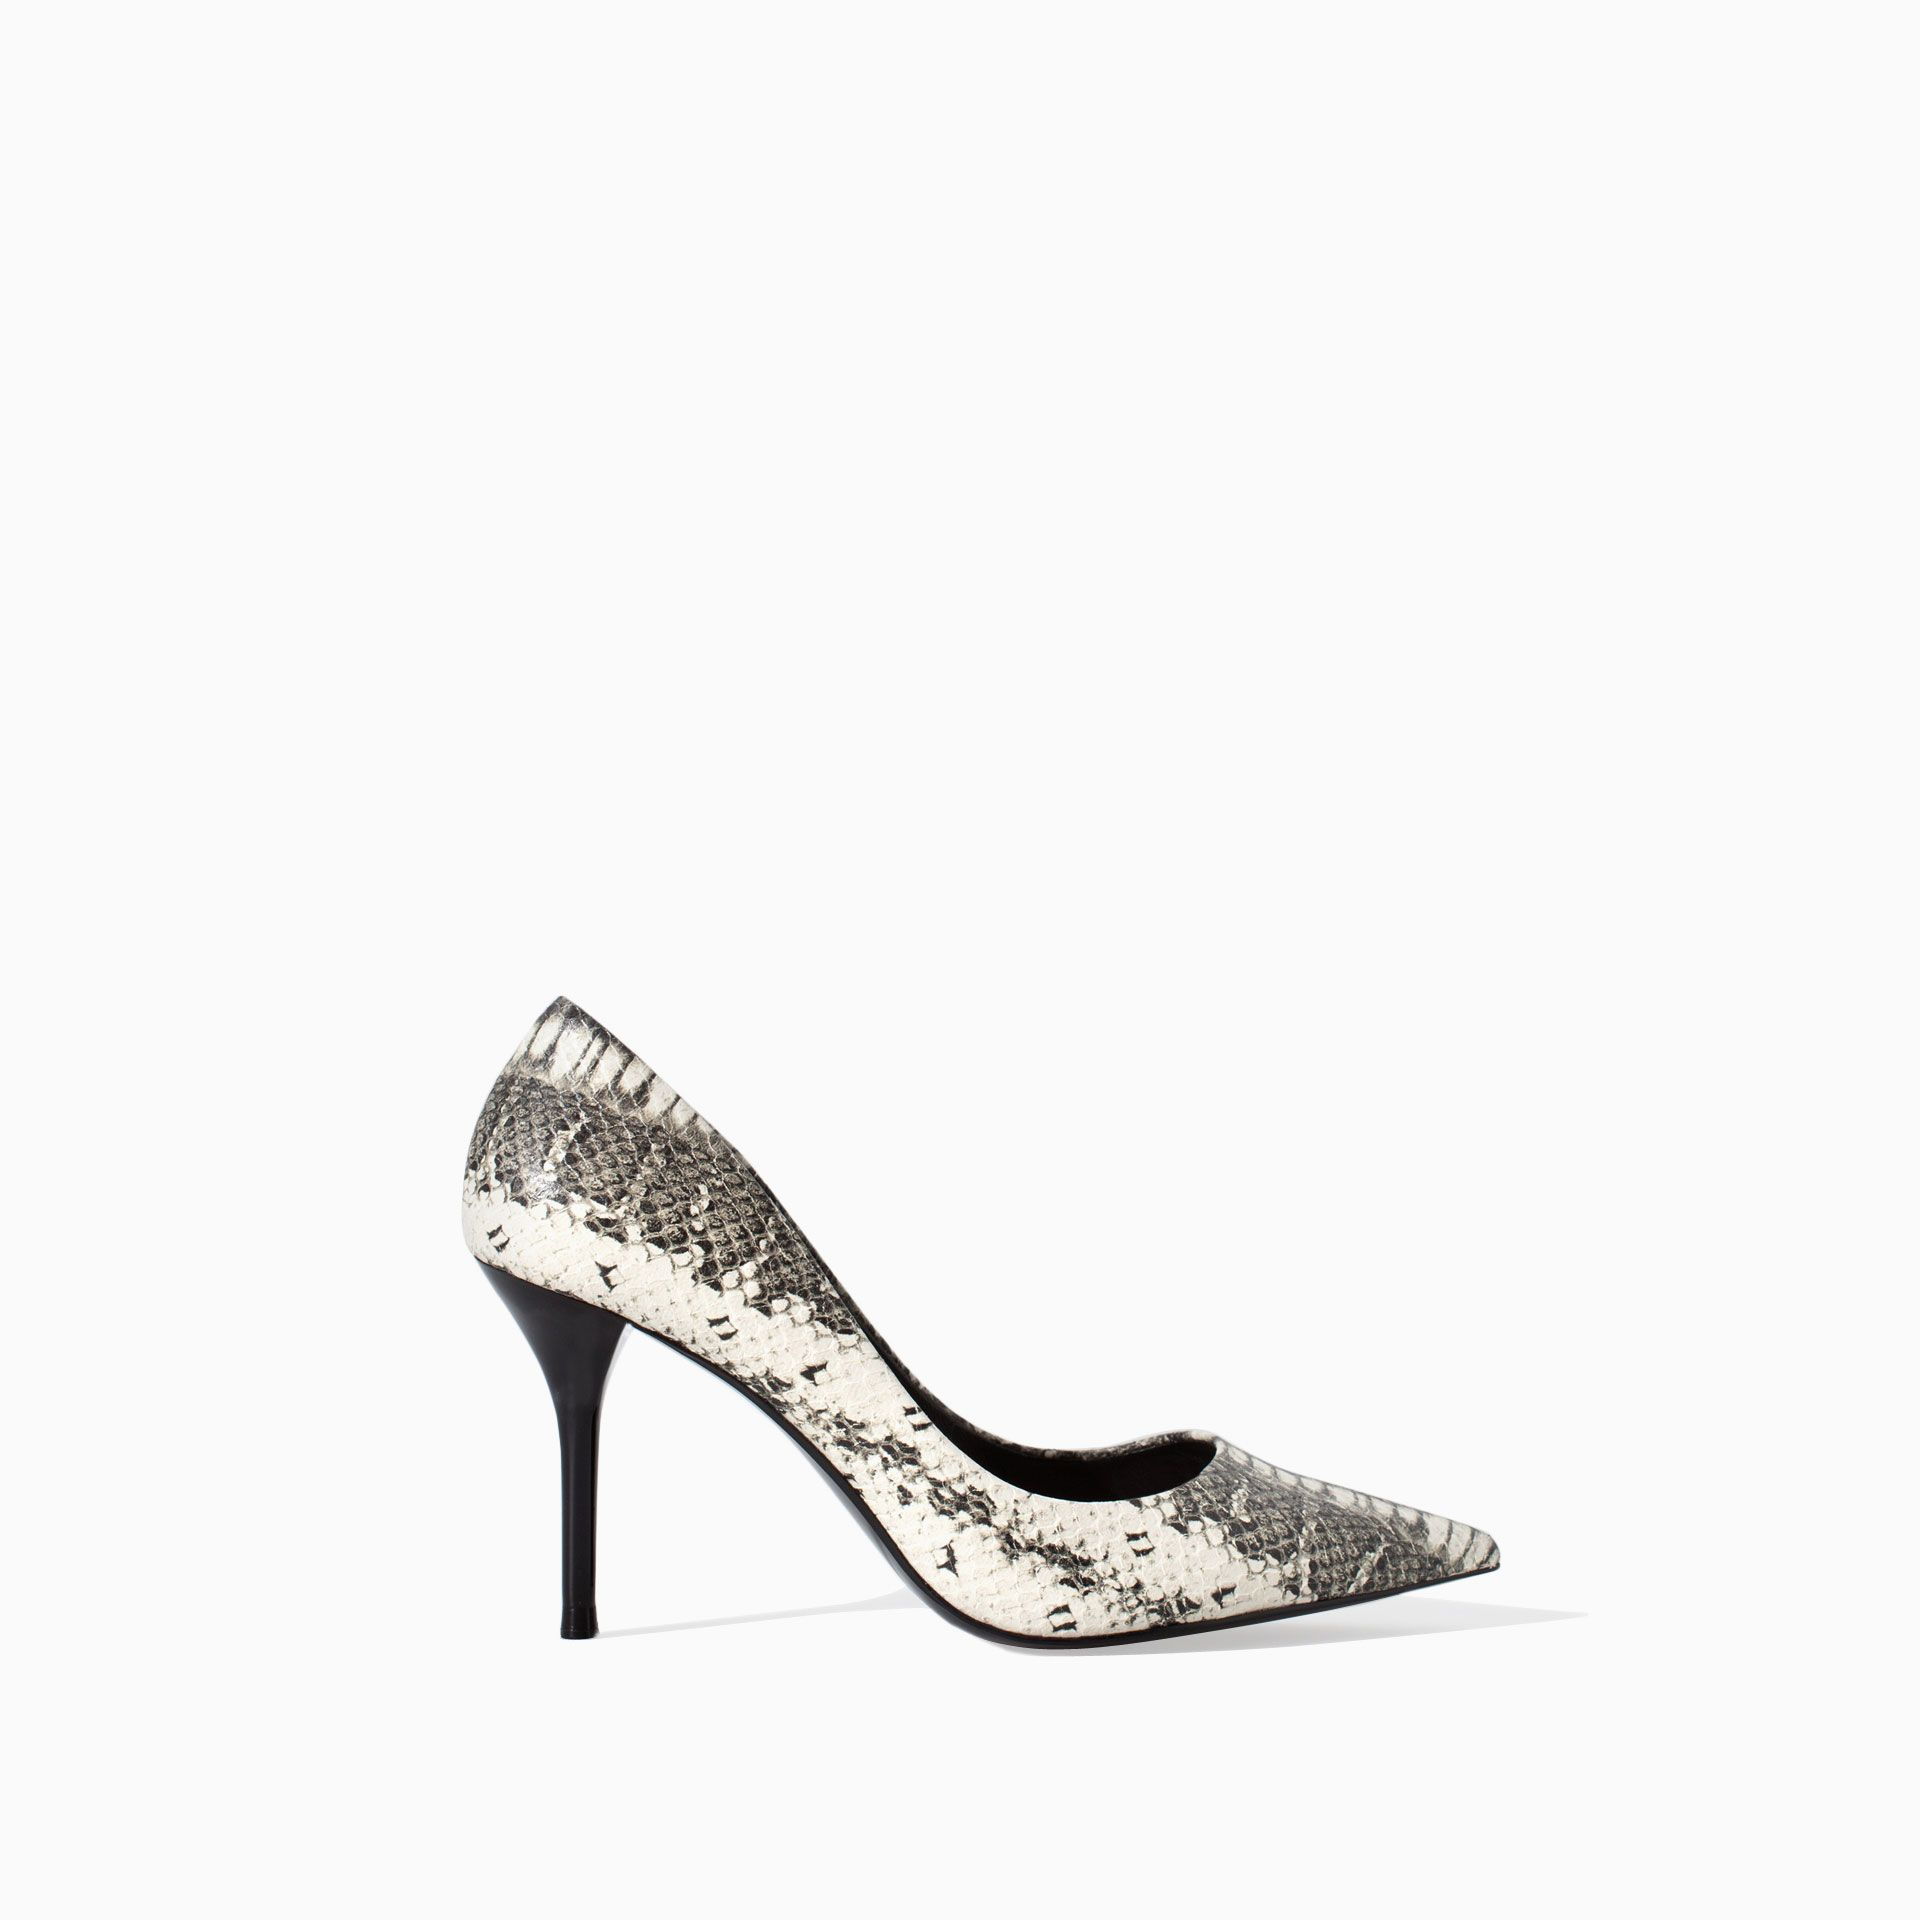 0cf2ee08bf5 Image 1 of SNAKESKIN LEATHER COURT SHOE WITH HEEL from Zara